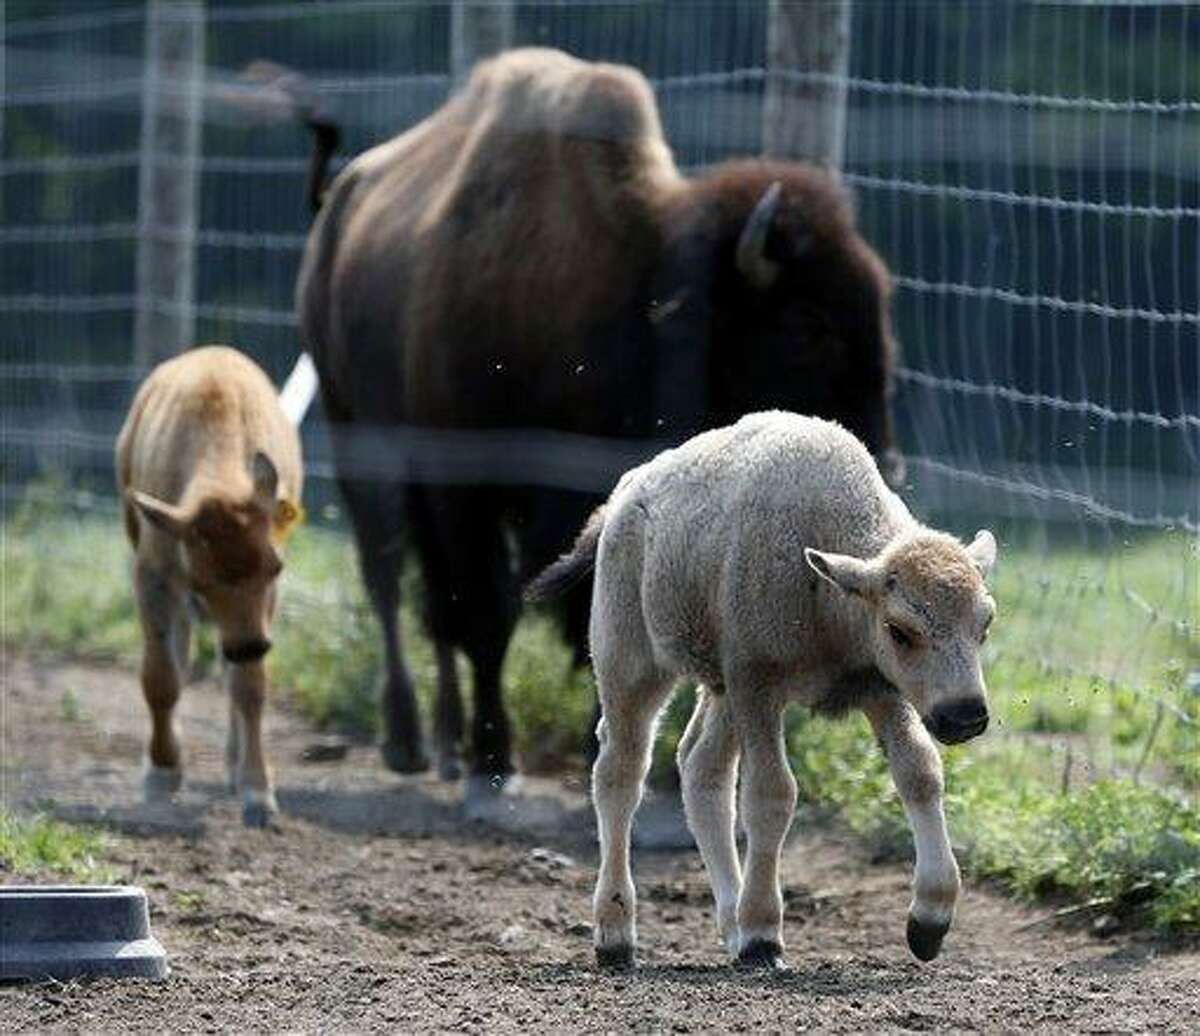 A white bison calf walks in a field with other bison at the Mohawk Bison farm July 18 in Goshen. Associated Press